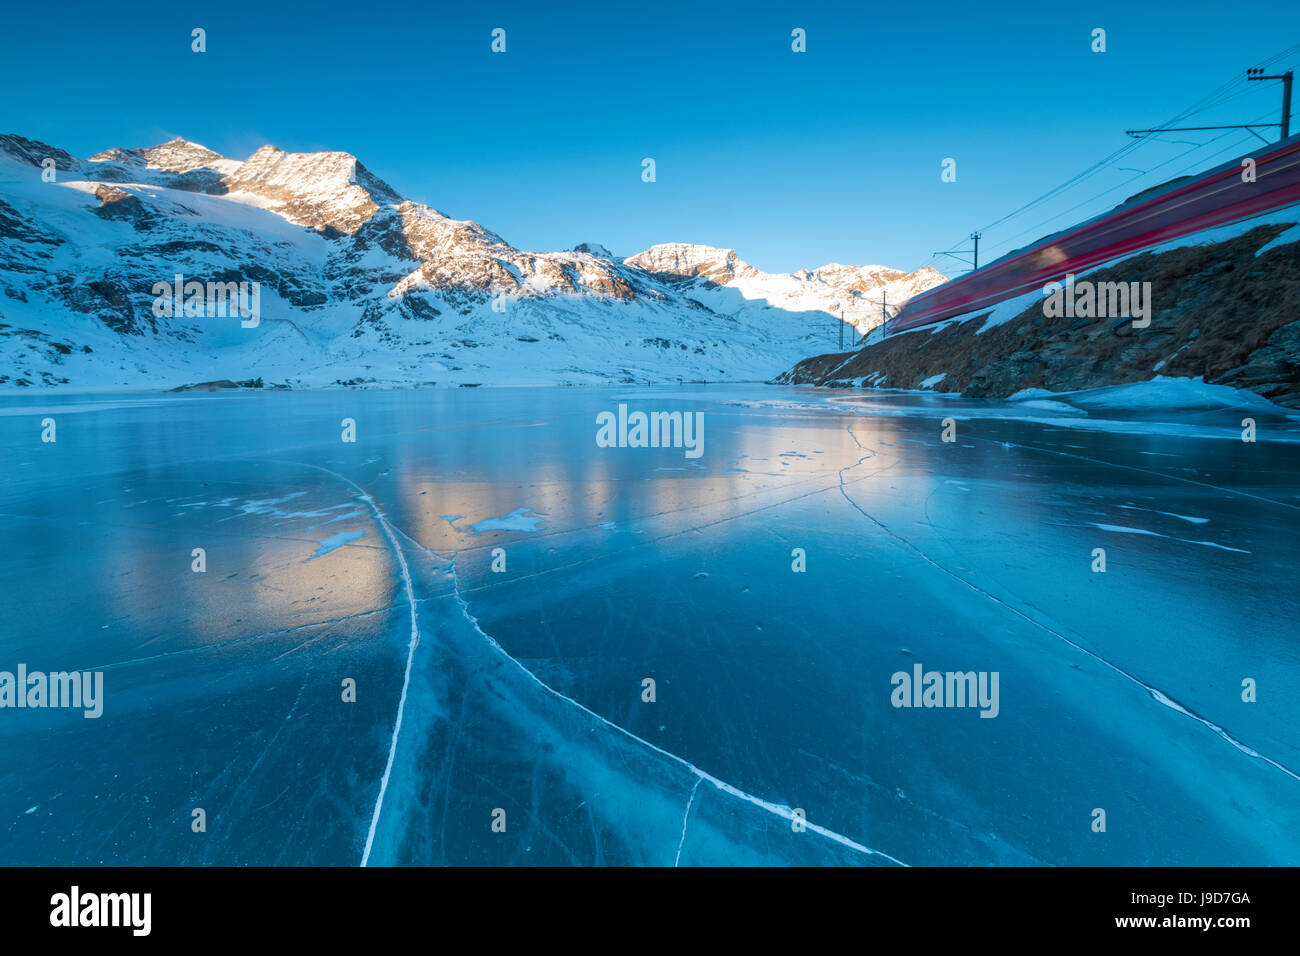 The Bernina Express train runs beside the frozen Lago Bianco, Bernina Pass, canton of Graubunden, Engadine, Switzerland, - Stock Image